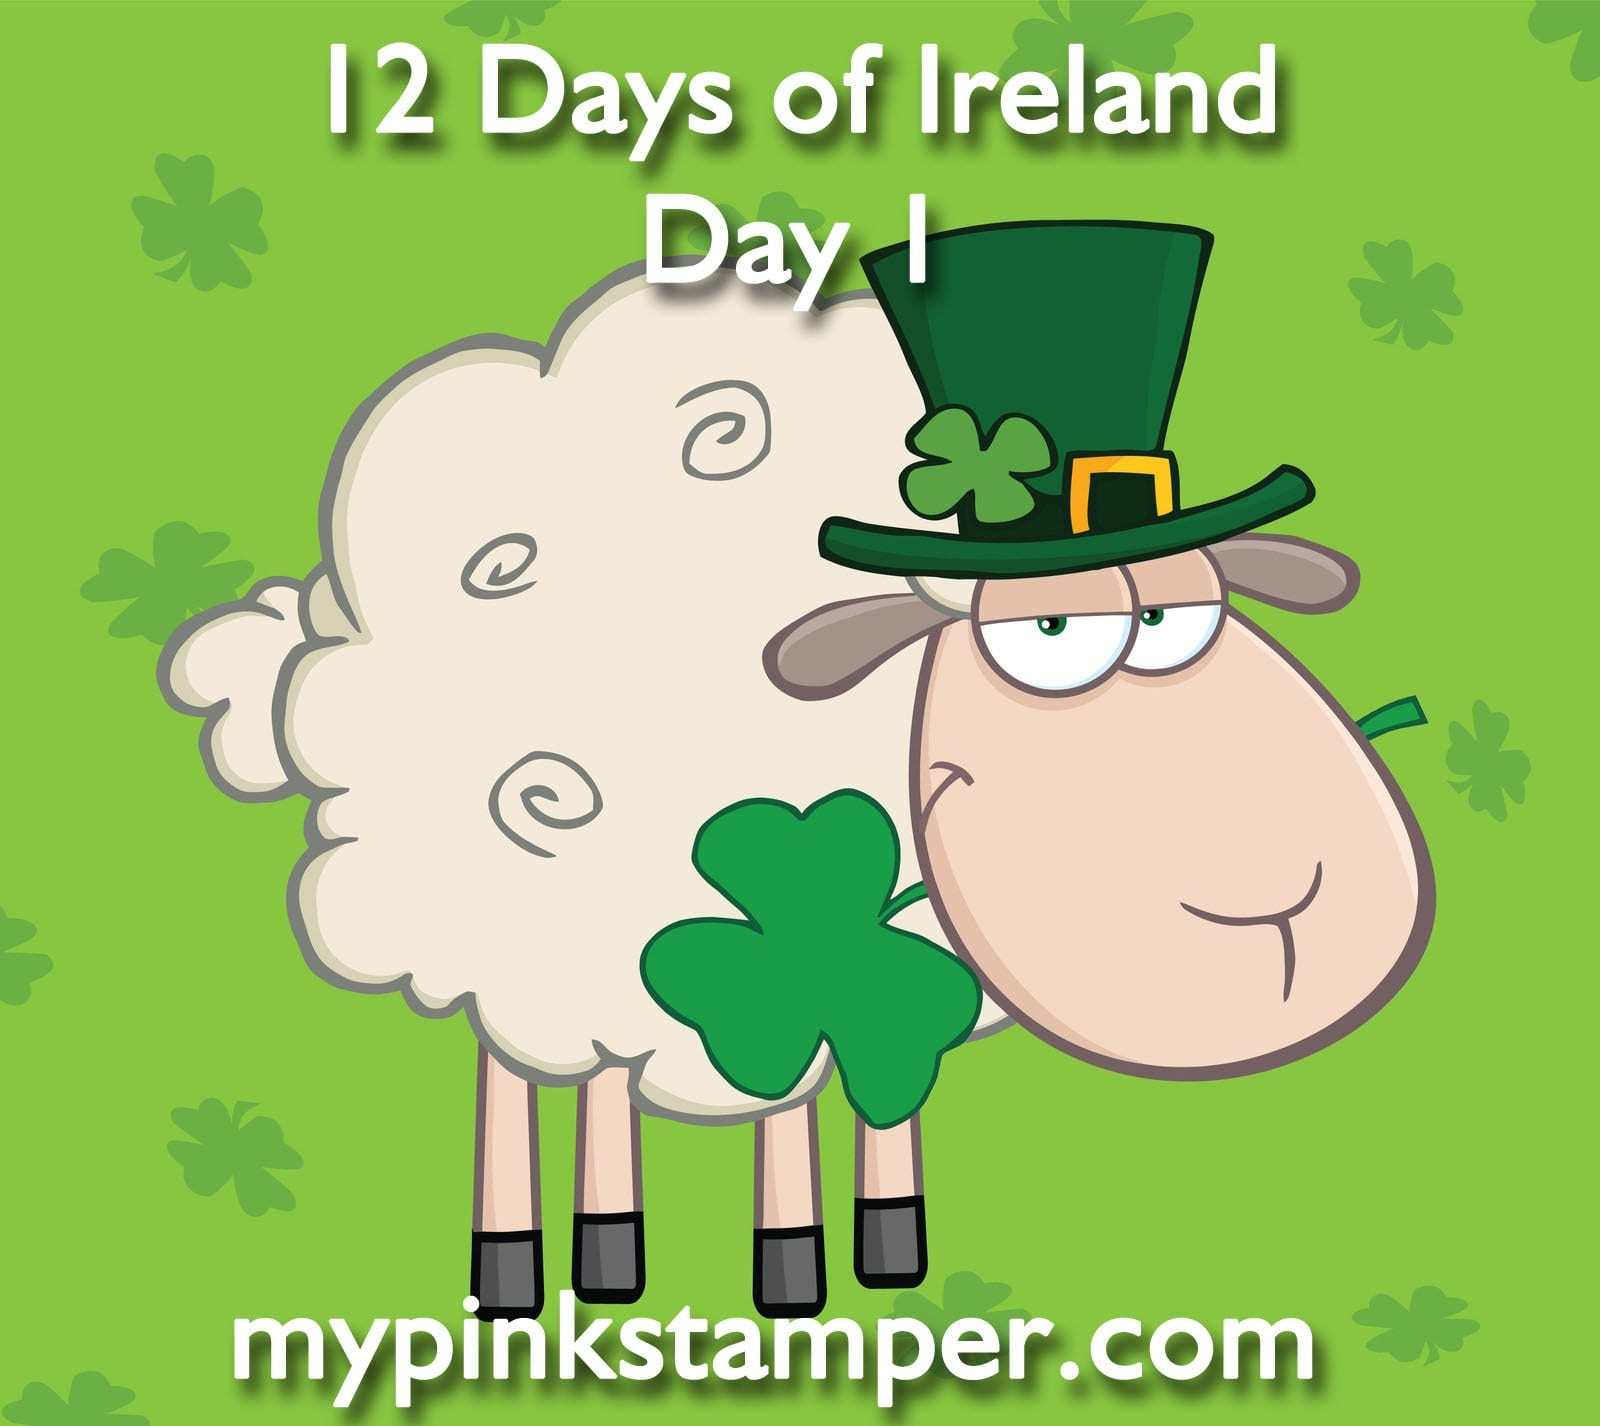 12 Days of Ireland – Day 1 Giveaway!